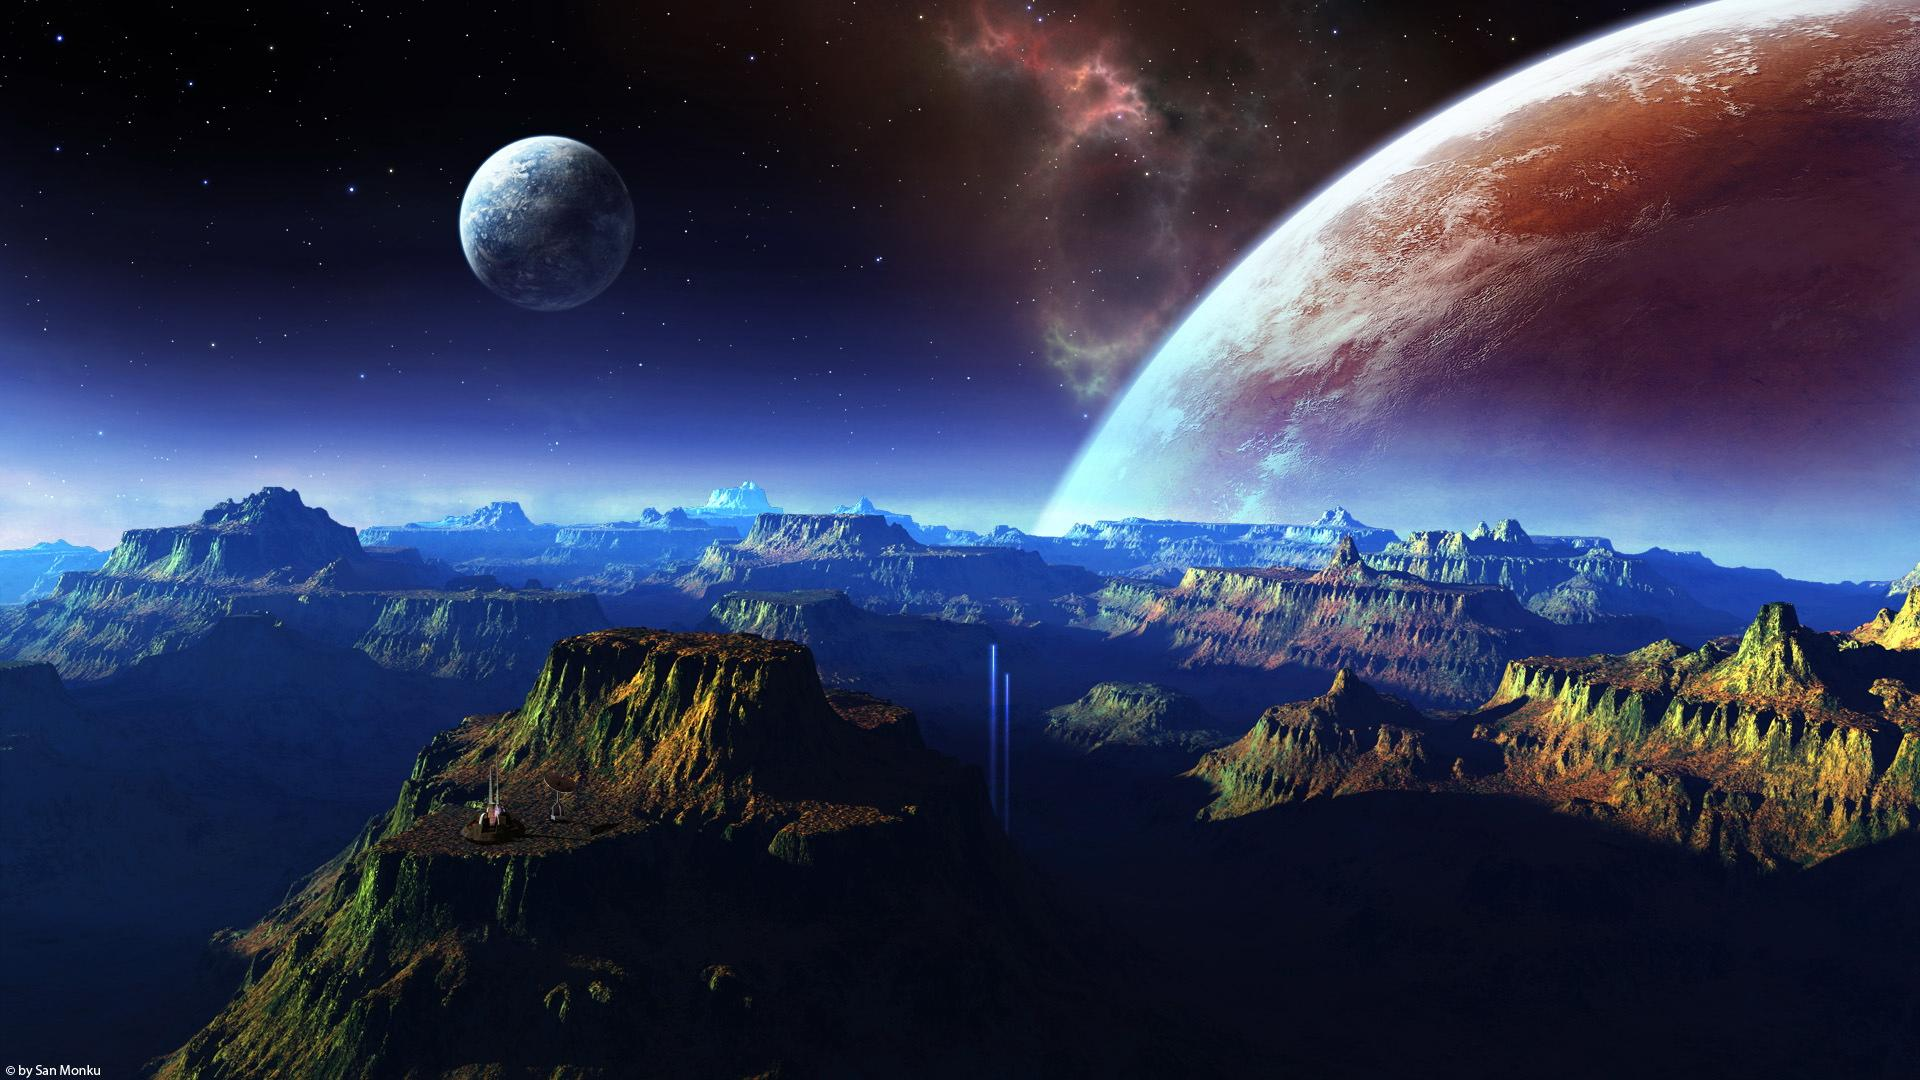 Desktop Backgrounds Space Download HD Wallpapers 1920x1080